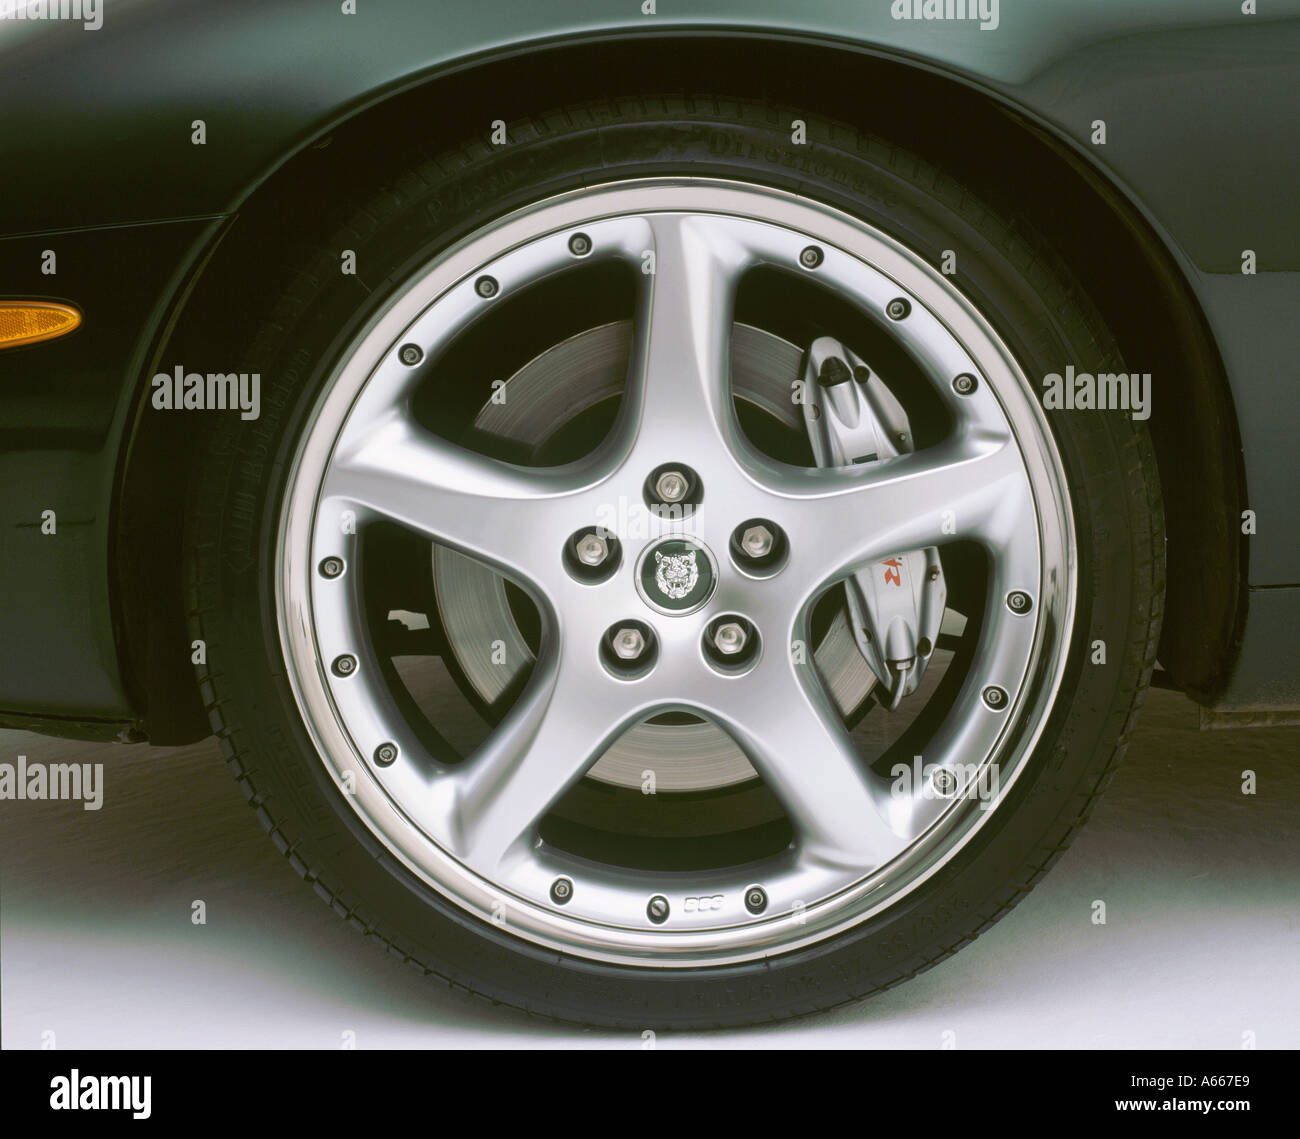 2002 Jaguar XKR alloy wheel - Stock Image